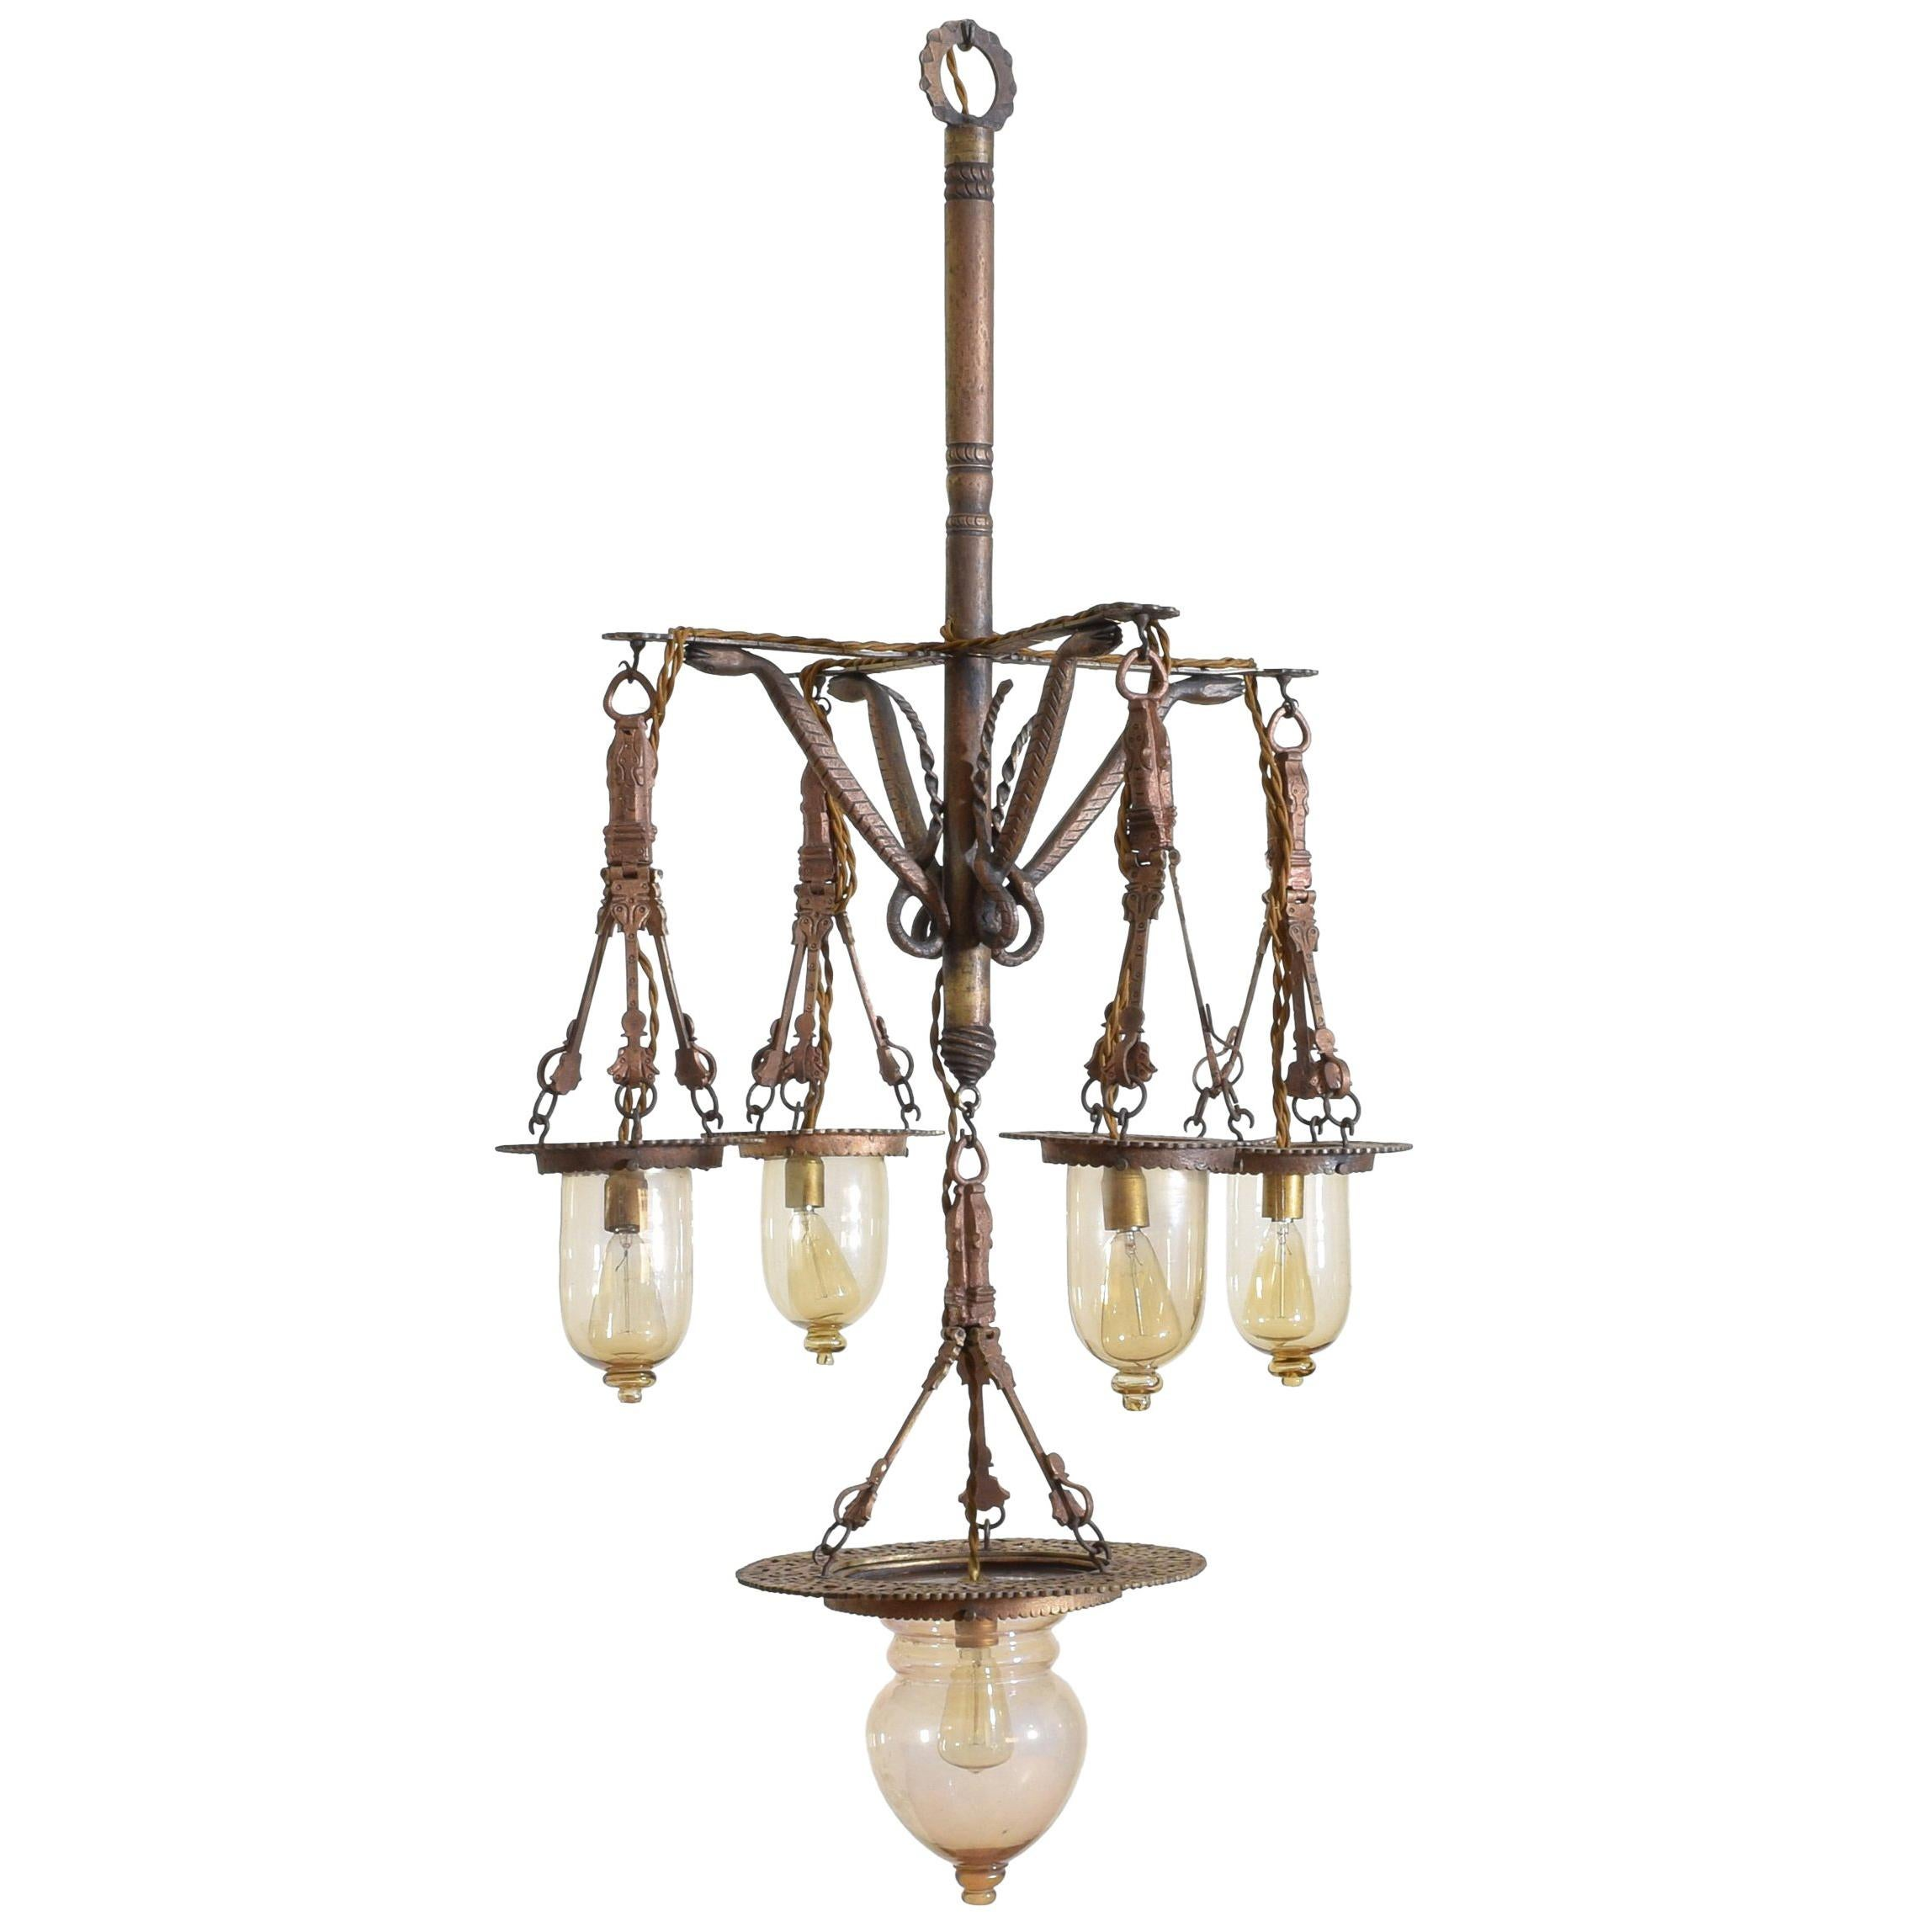 Antique and vintage chandeliers and pendants 33440 for sale at 1stdibs